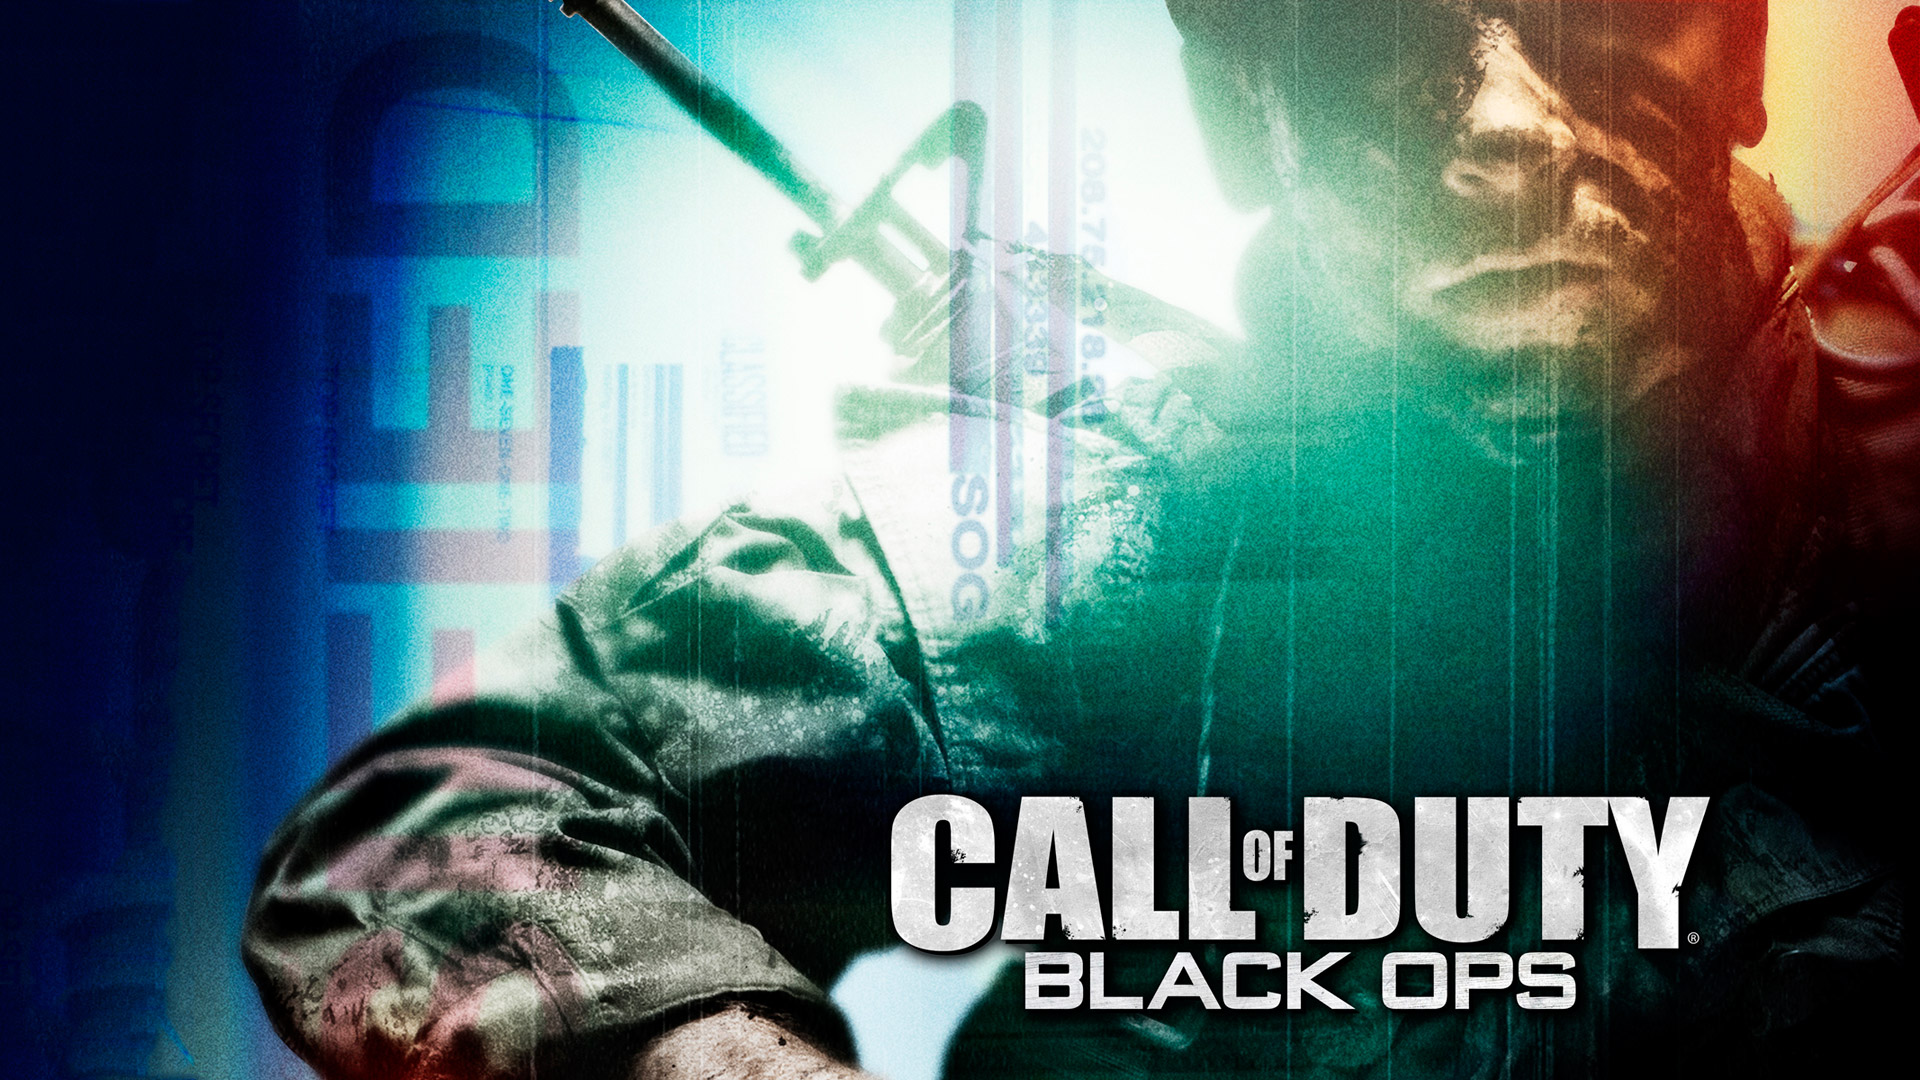 Free Call of Duty: Black Ops Wallpaper in 1920x1080